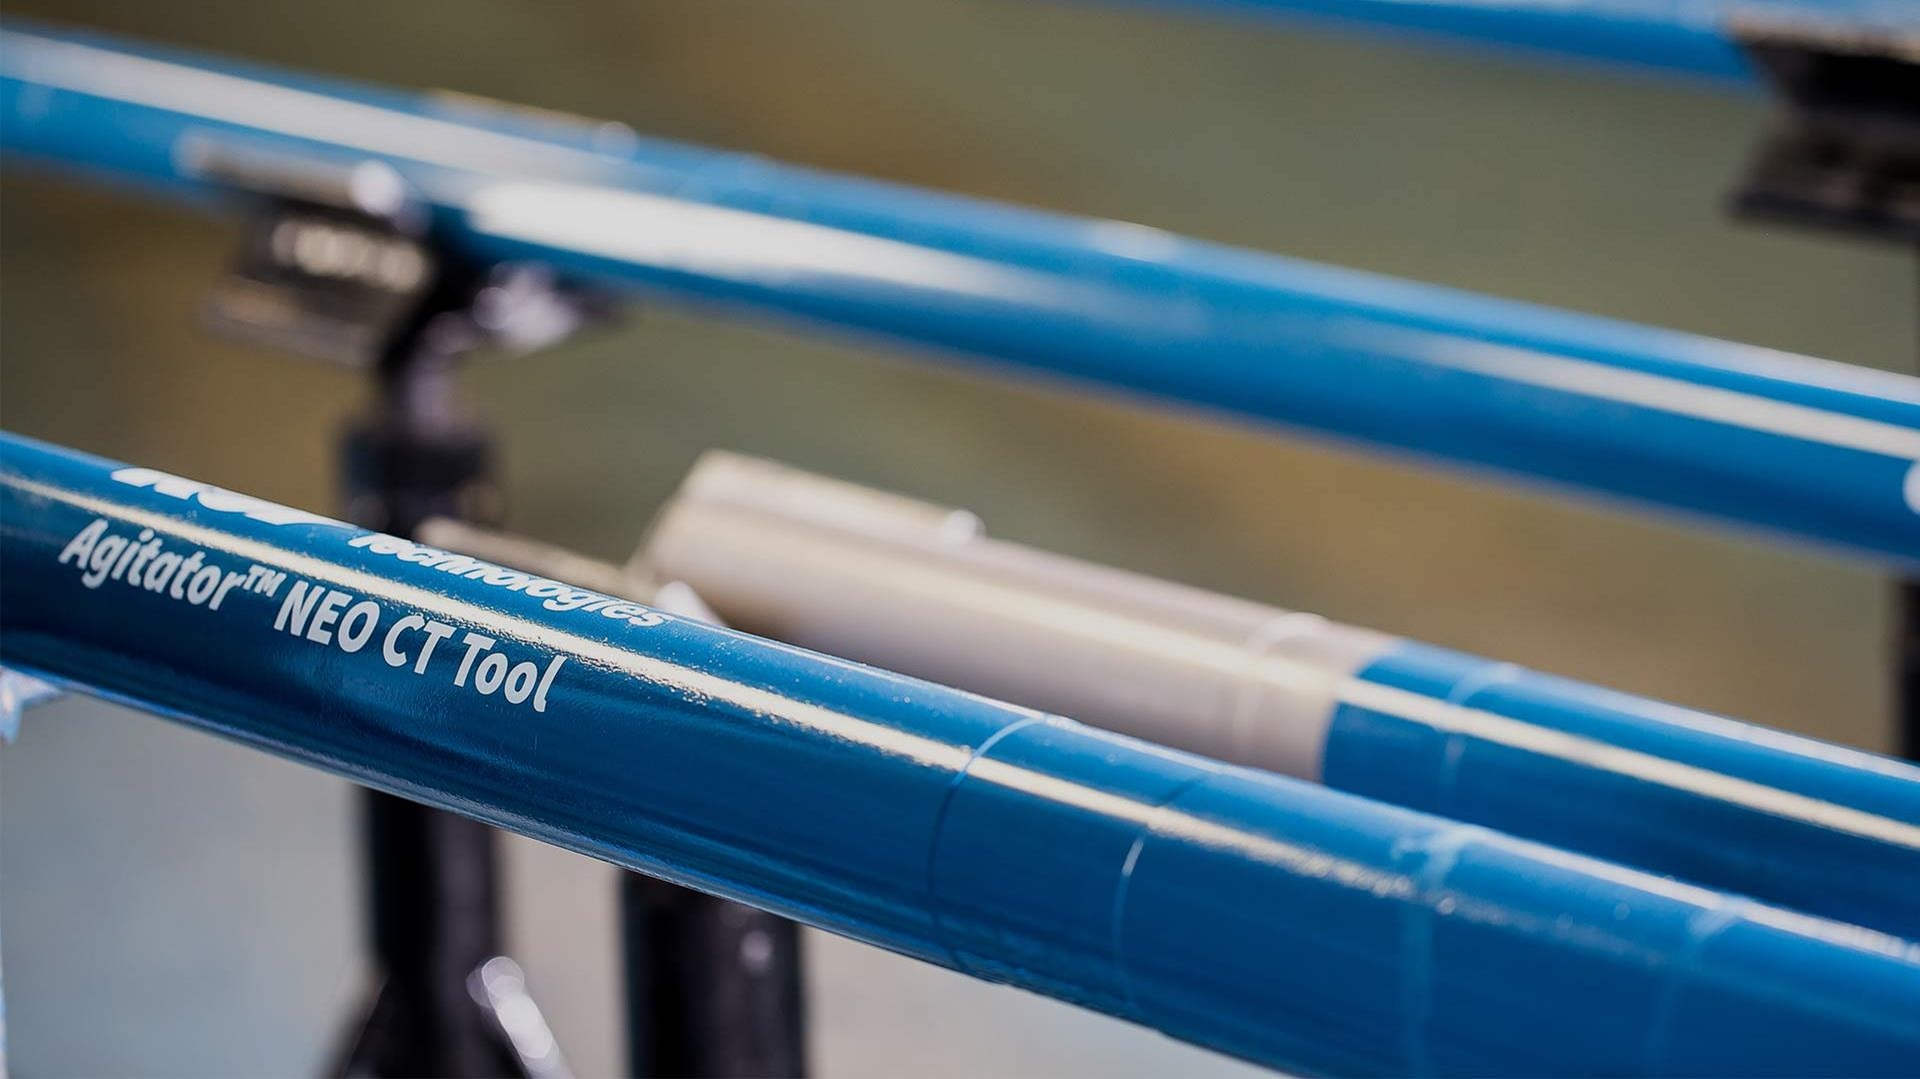 Close up of Agitator NEO Coiled Tubing Tool